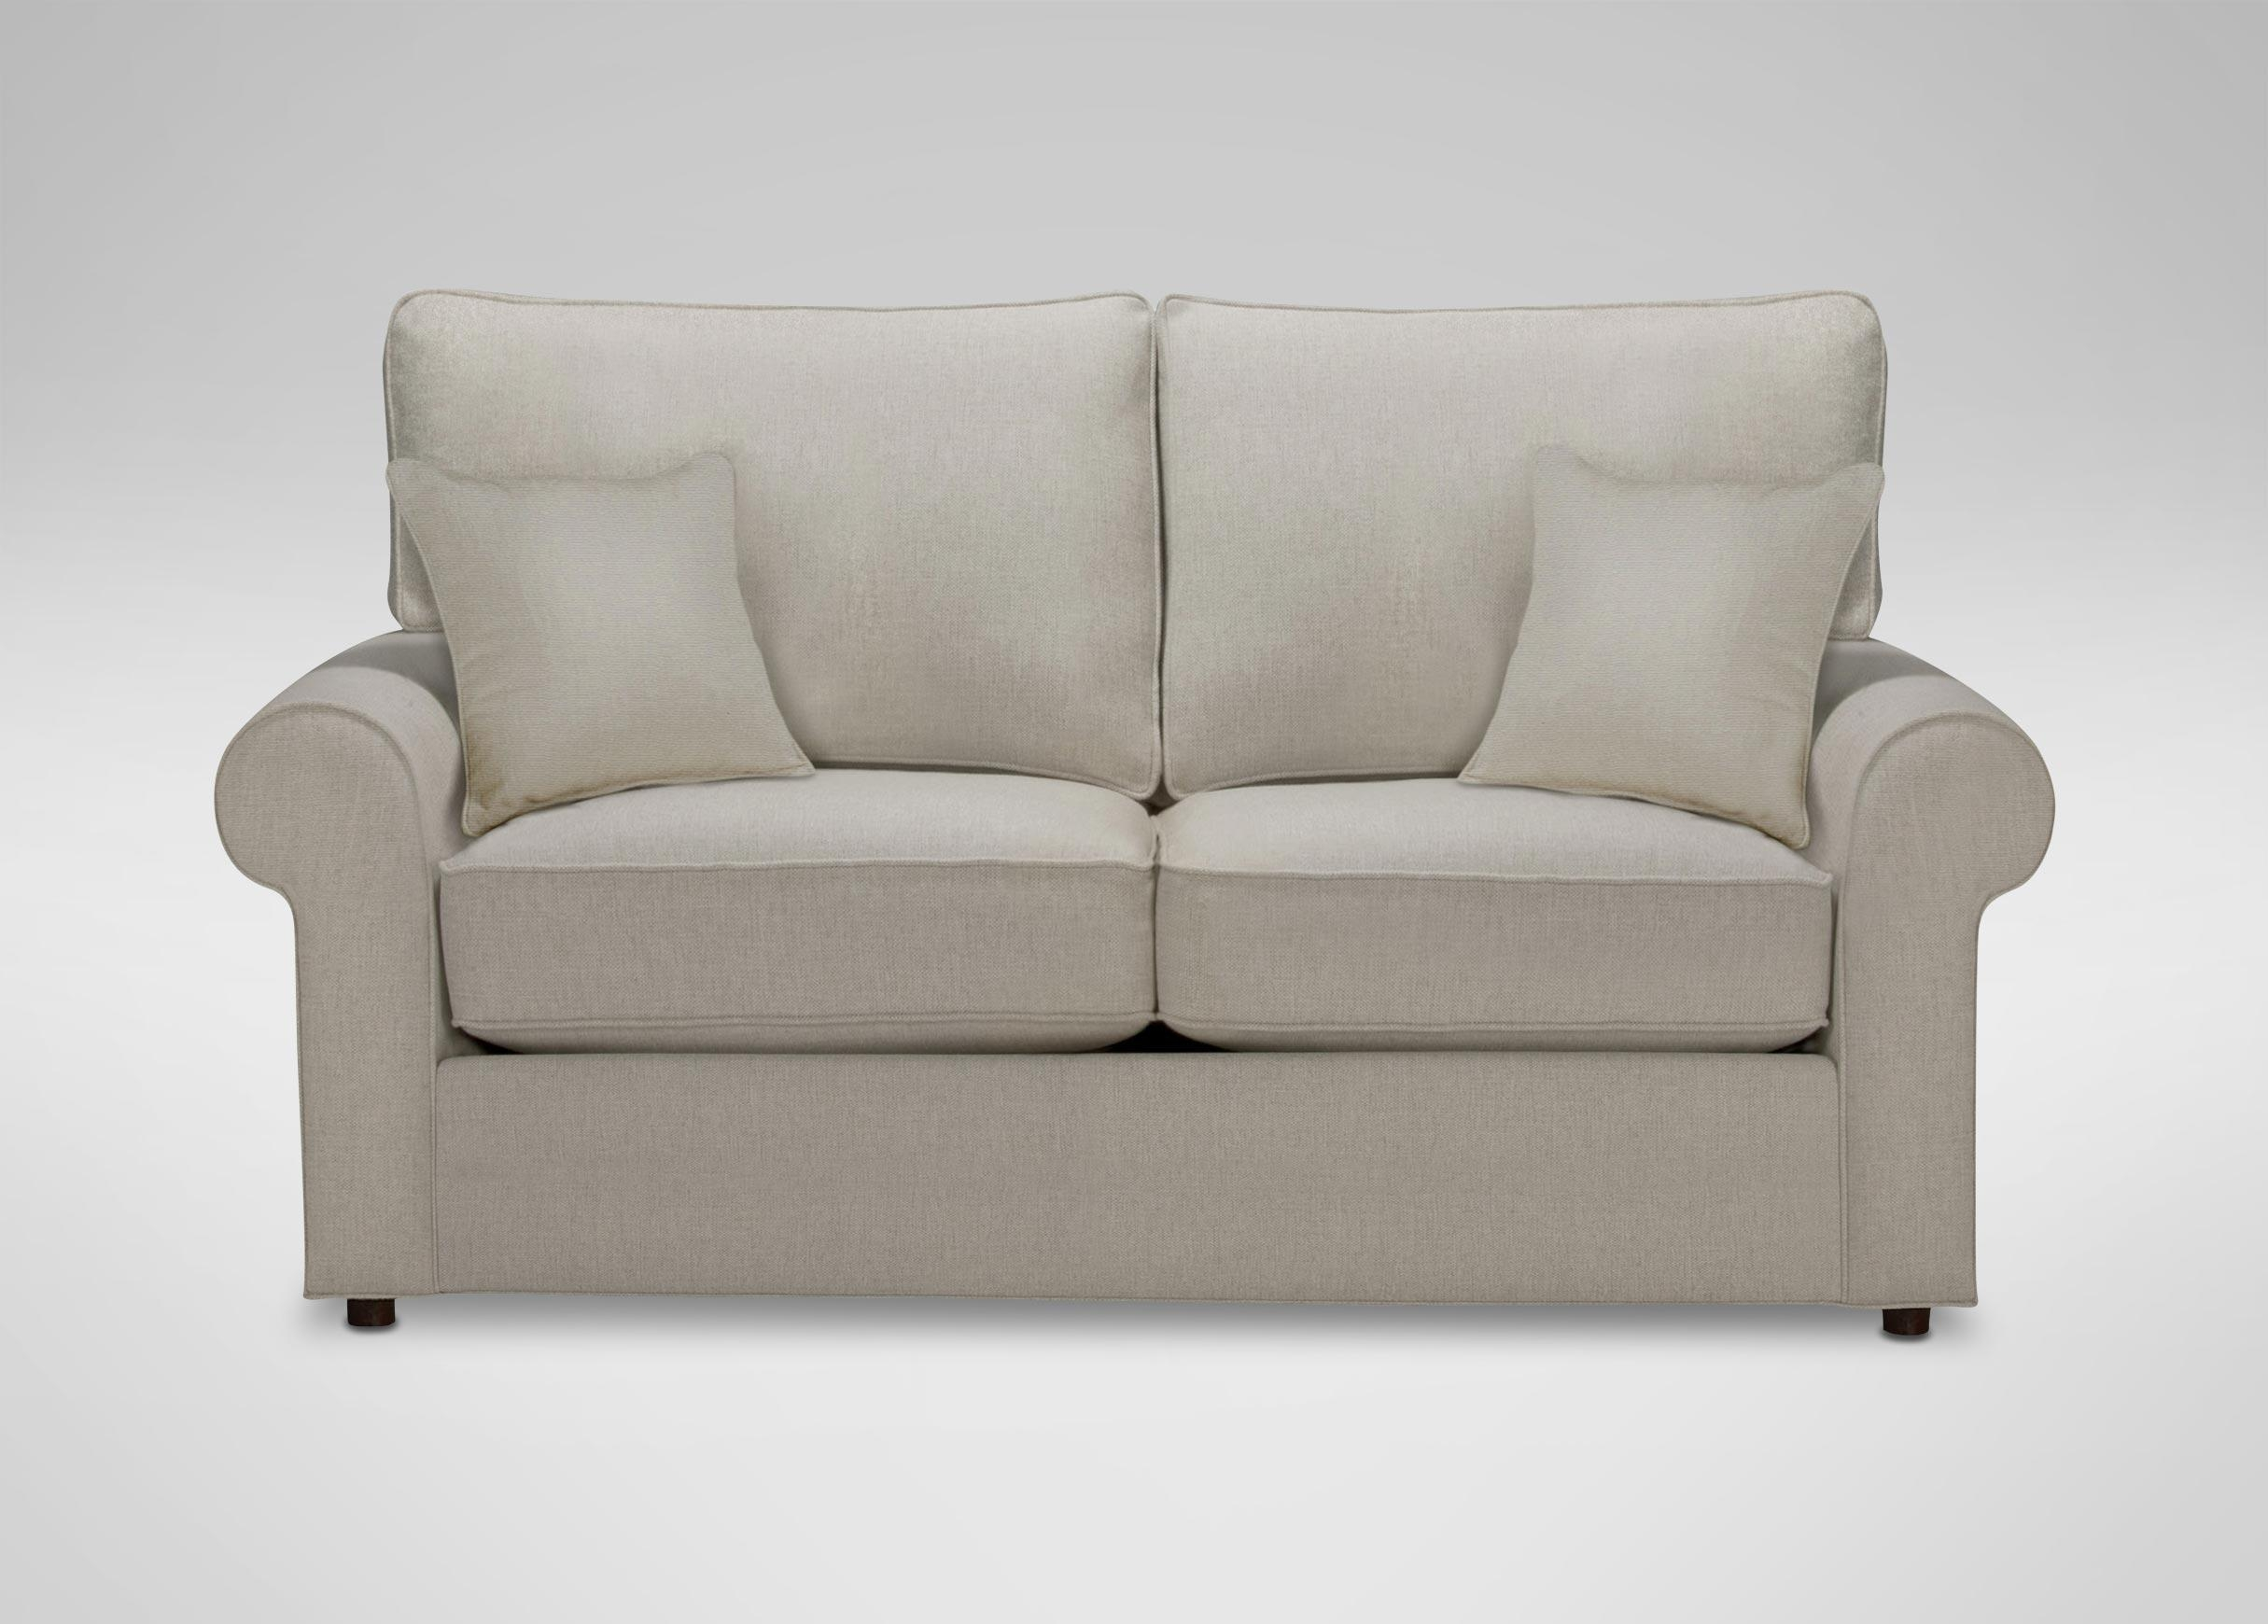 Retreat Roll Arm Sofa, Quick Ship | Sofas & Loveseats In 68 Inch Sofas (View 10 of 20)